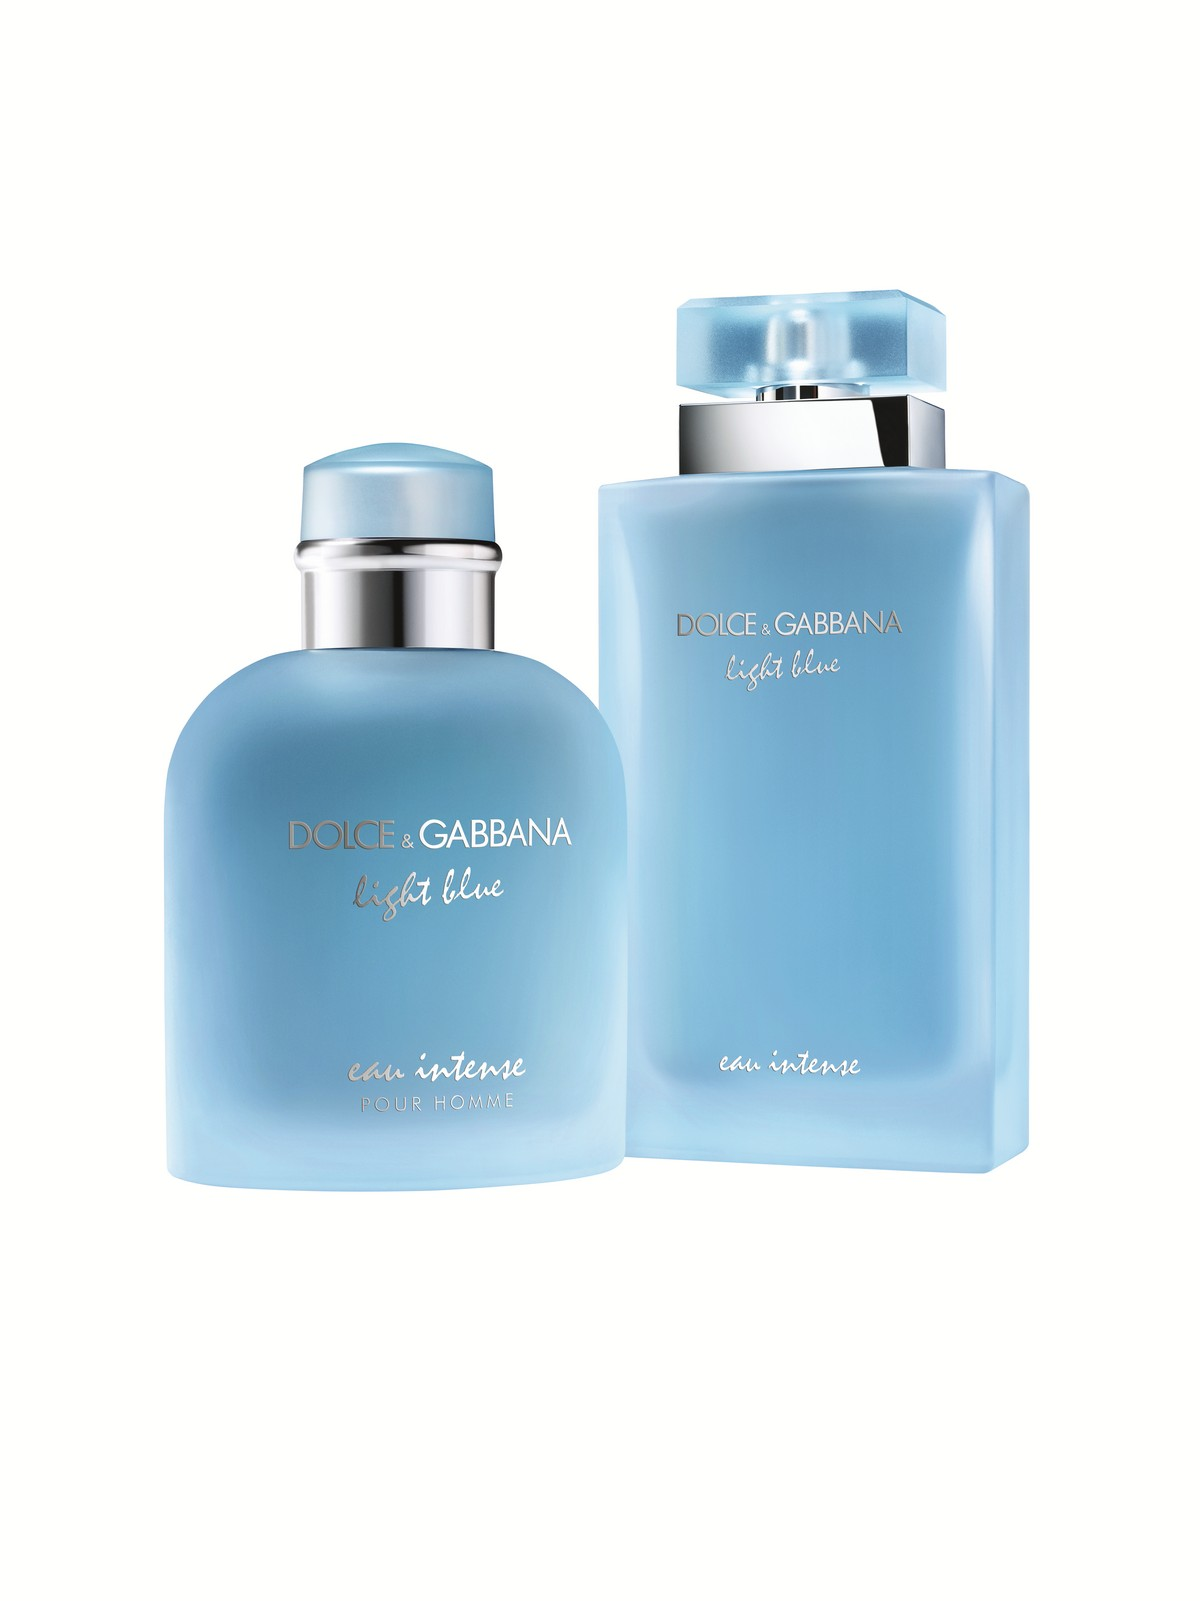 Dolce&Gabbana presenta le nuove fragranze Light Blue Eau Intense